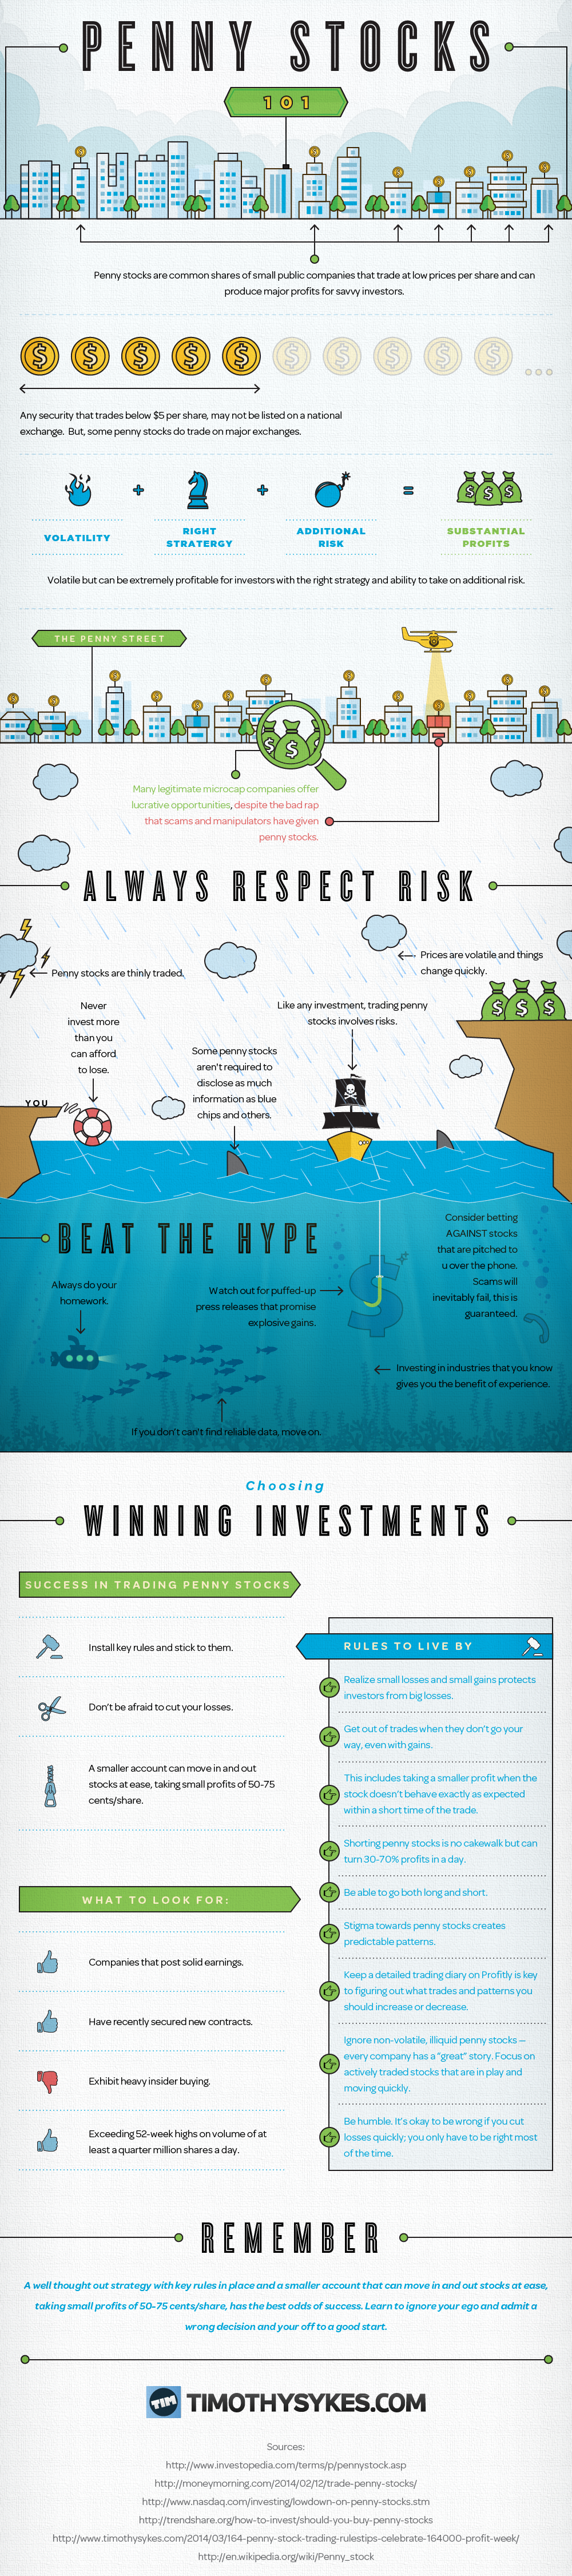 Penny Stocks 101 #infographic